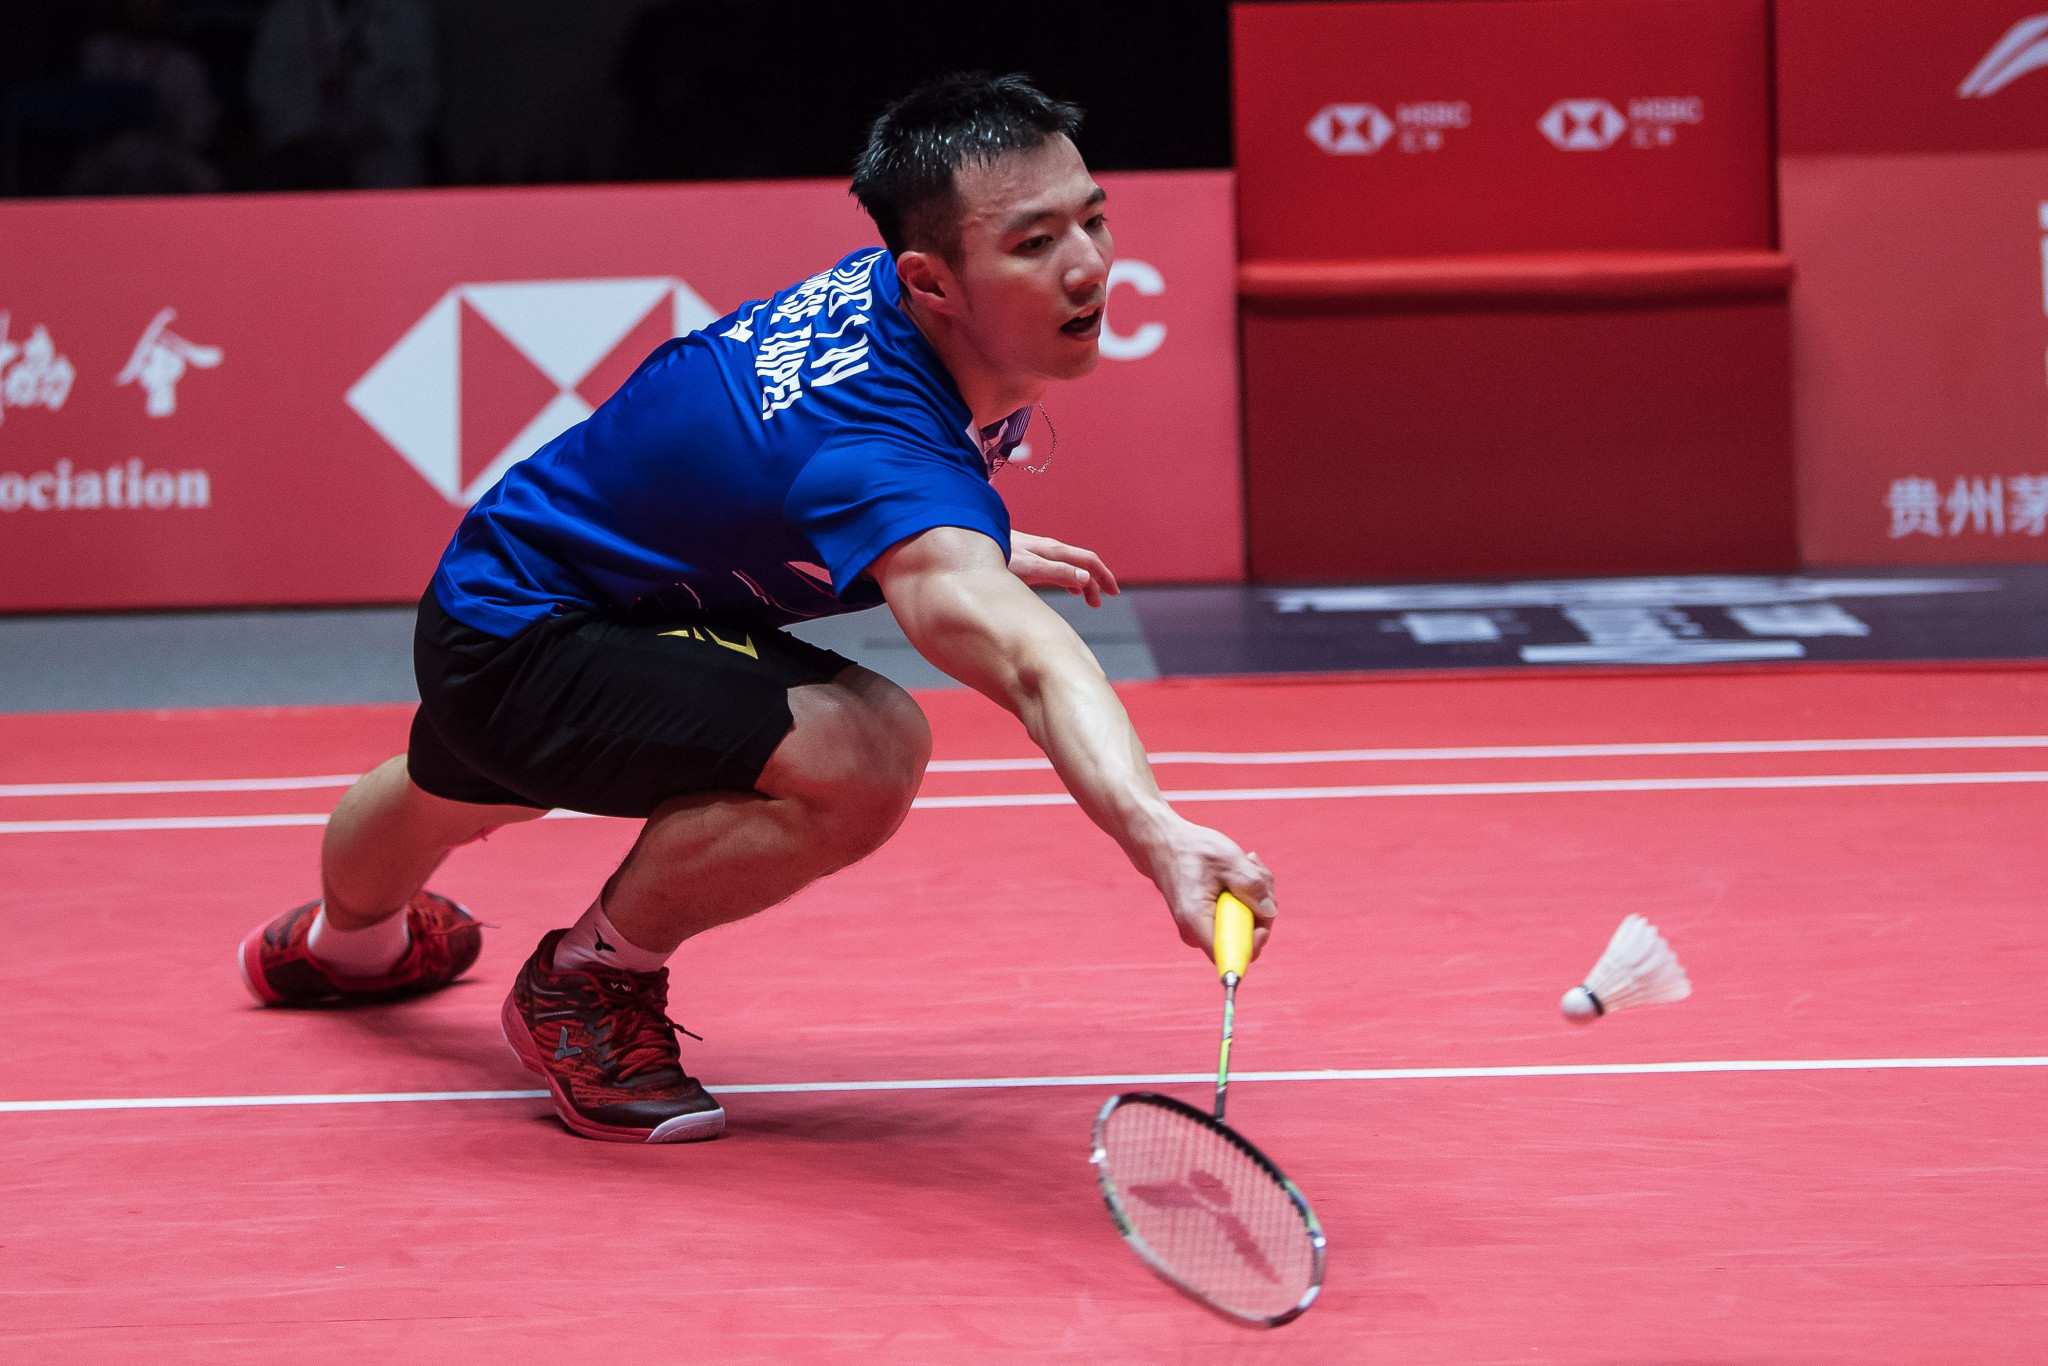 Eighth seed Wang Tzu-wei will face fellow Taiwanese Lin Yu-hsien in round one of the men's singles event ©Getty Images